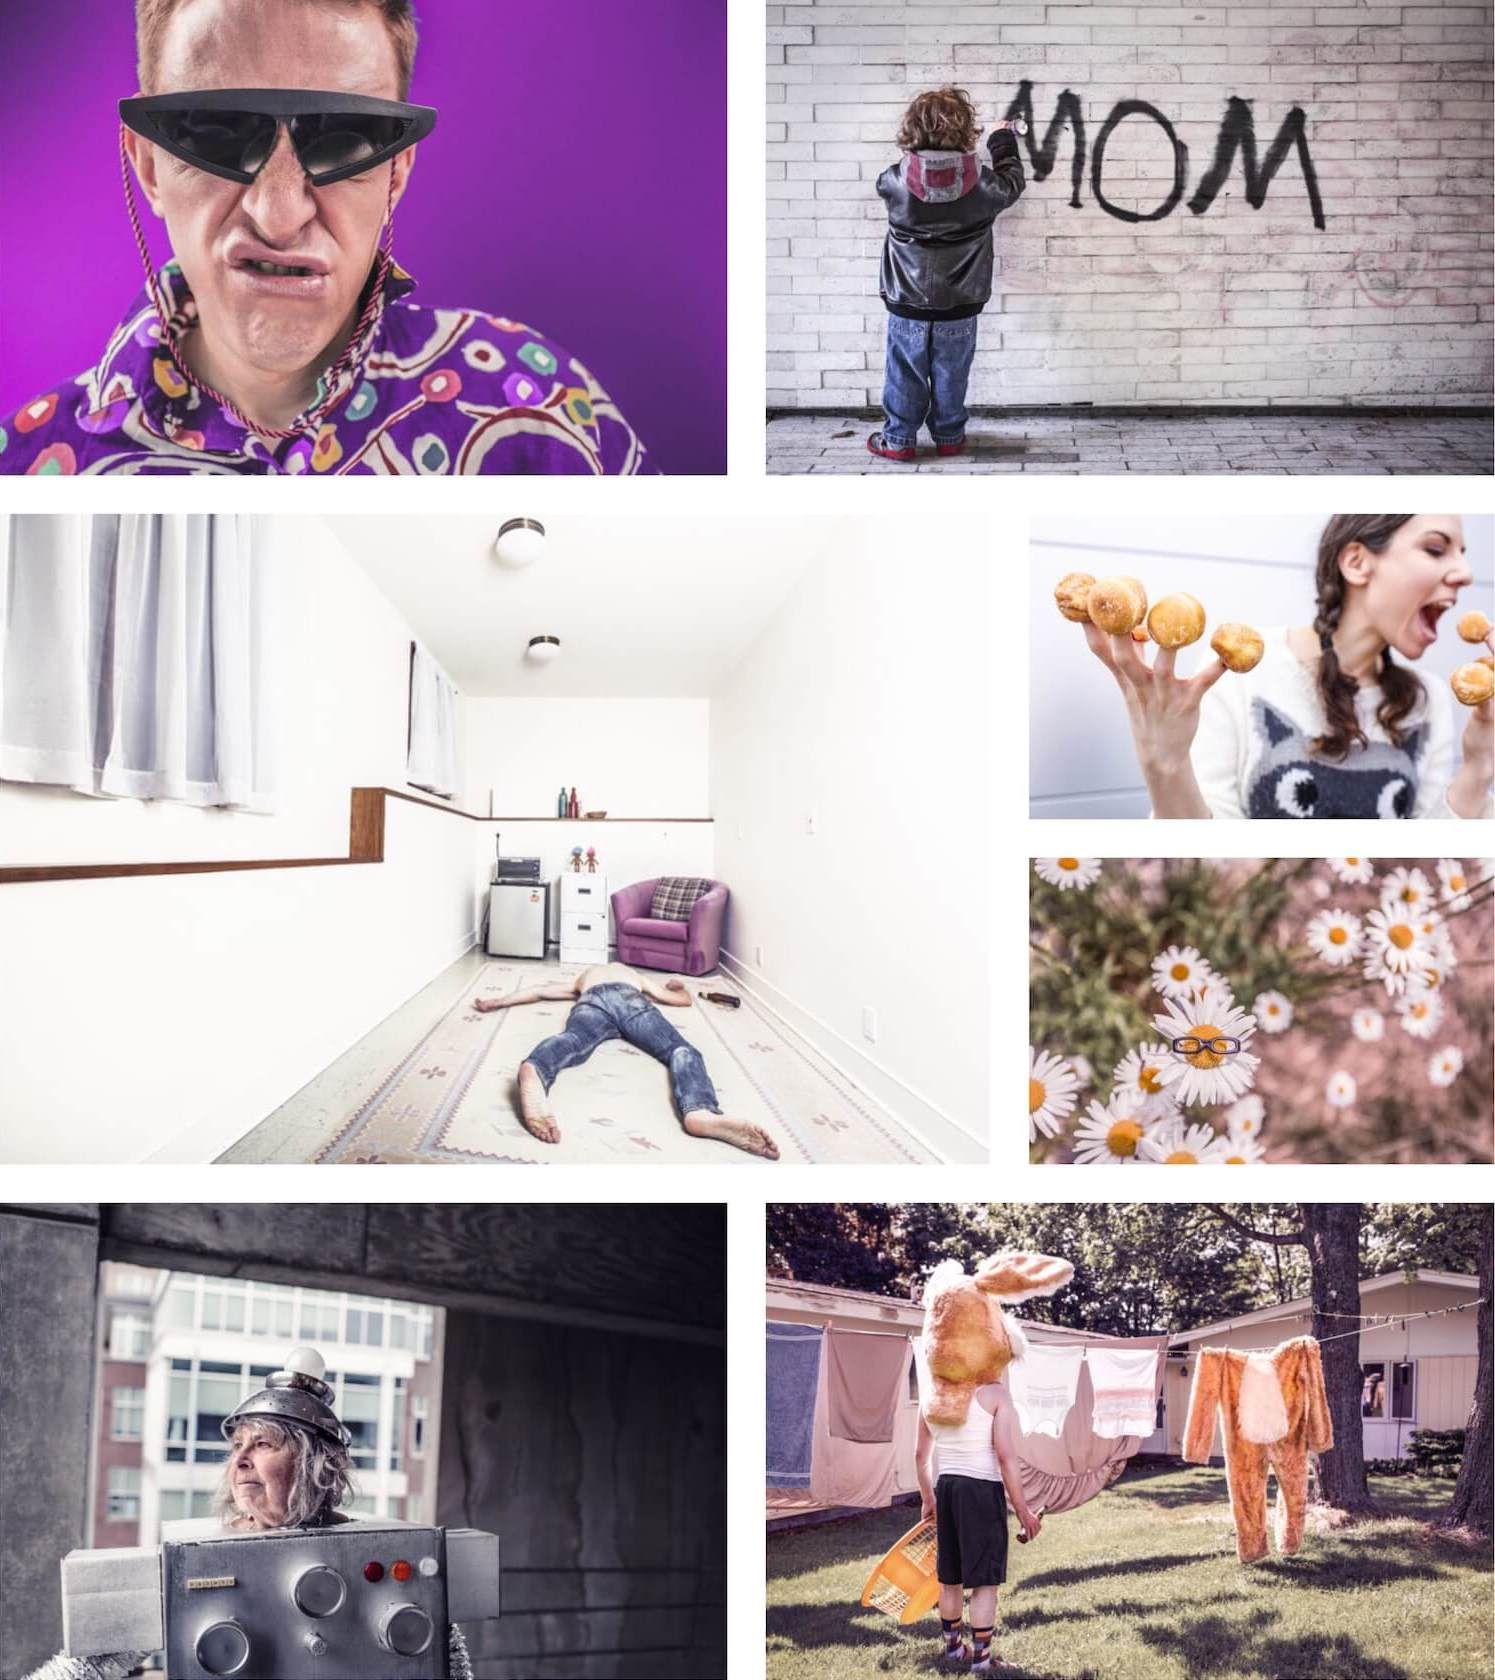 Collection of photos from gratisography